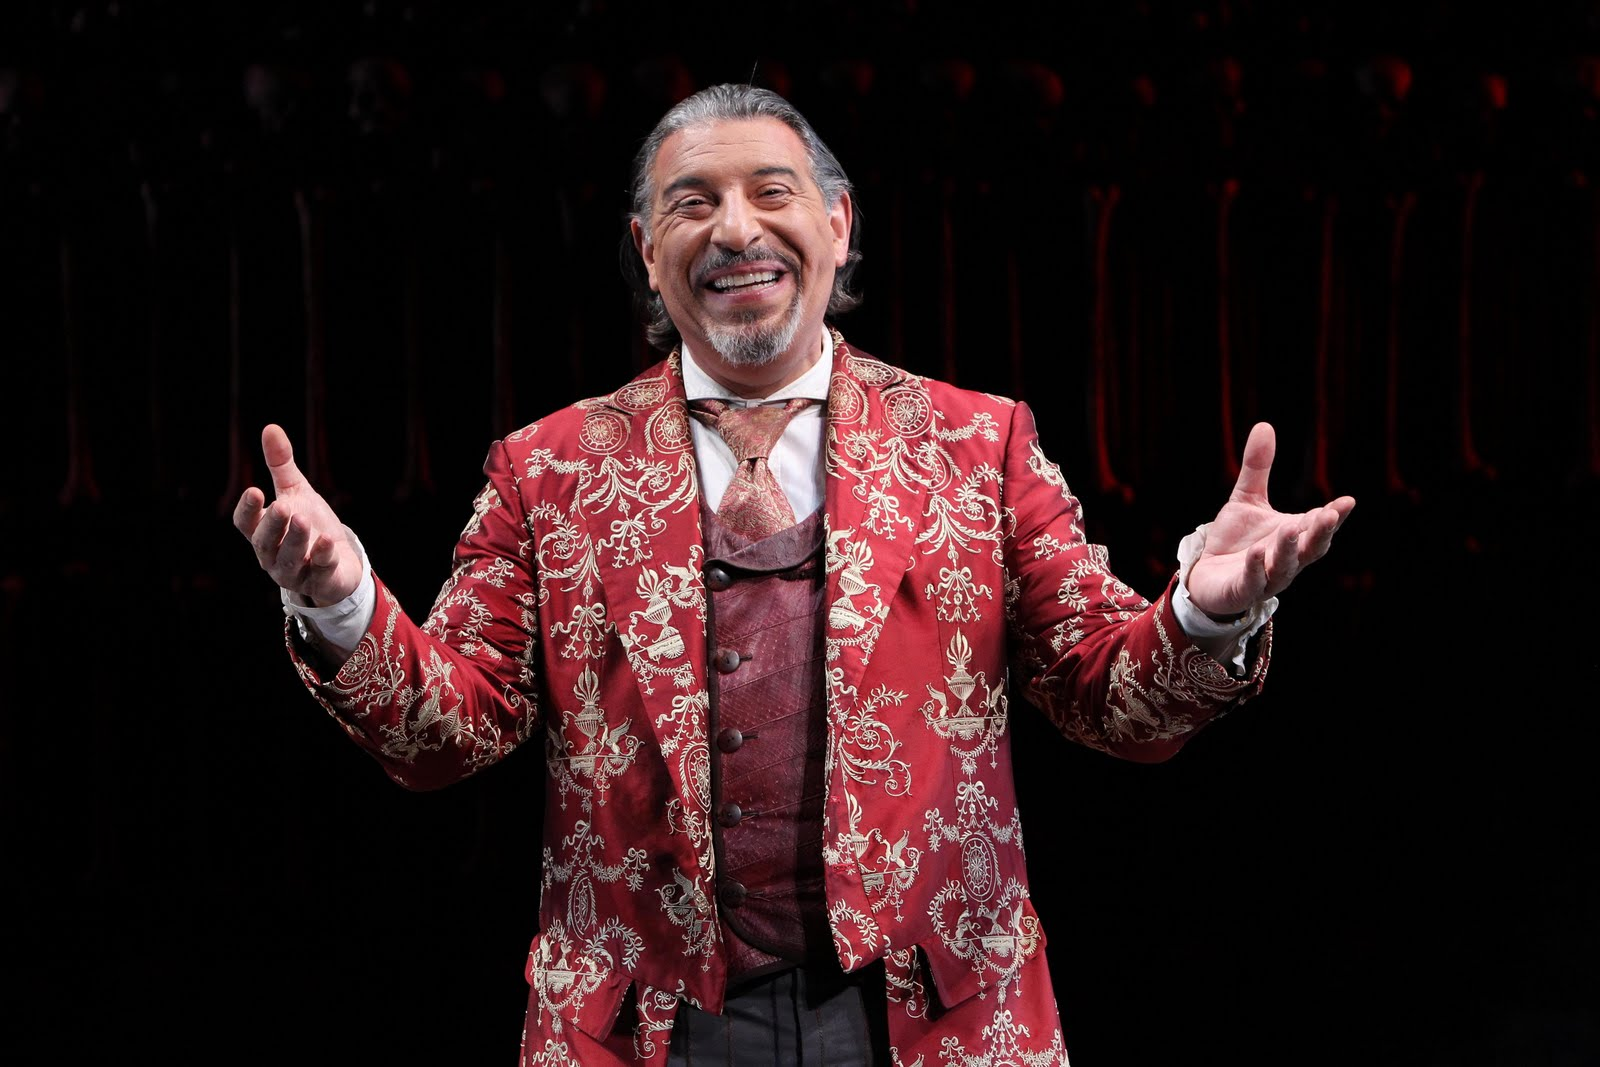 Life Upon the Sacred Stage The Screwtape Letters stage Gives